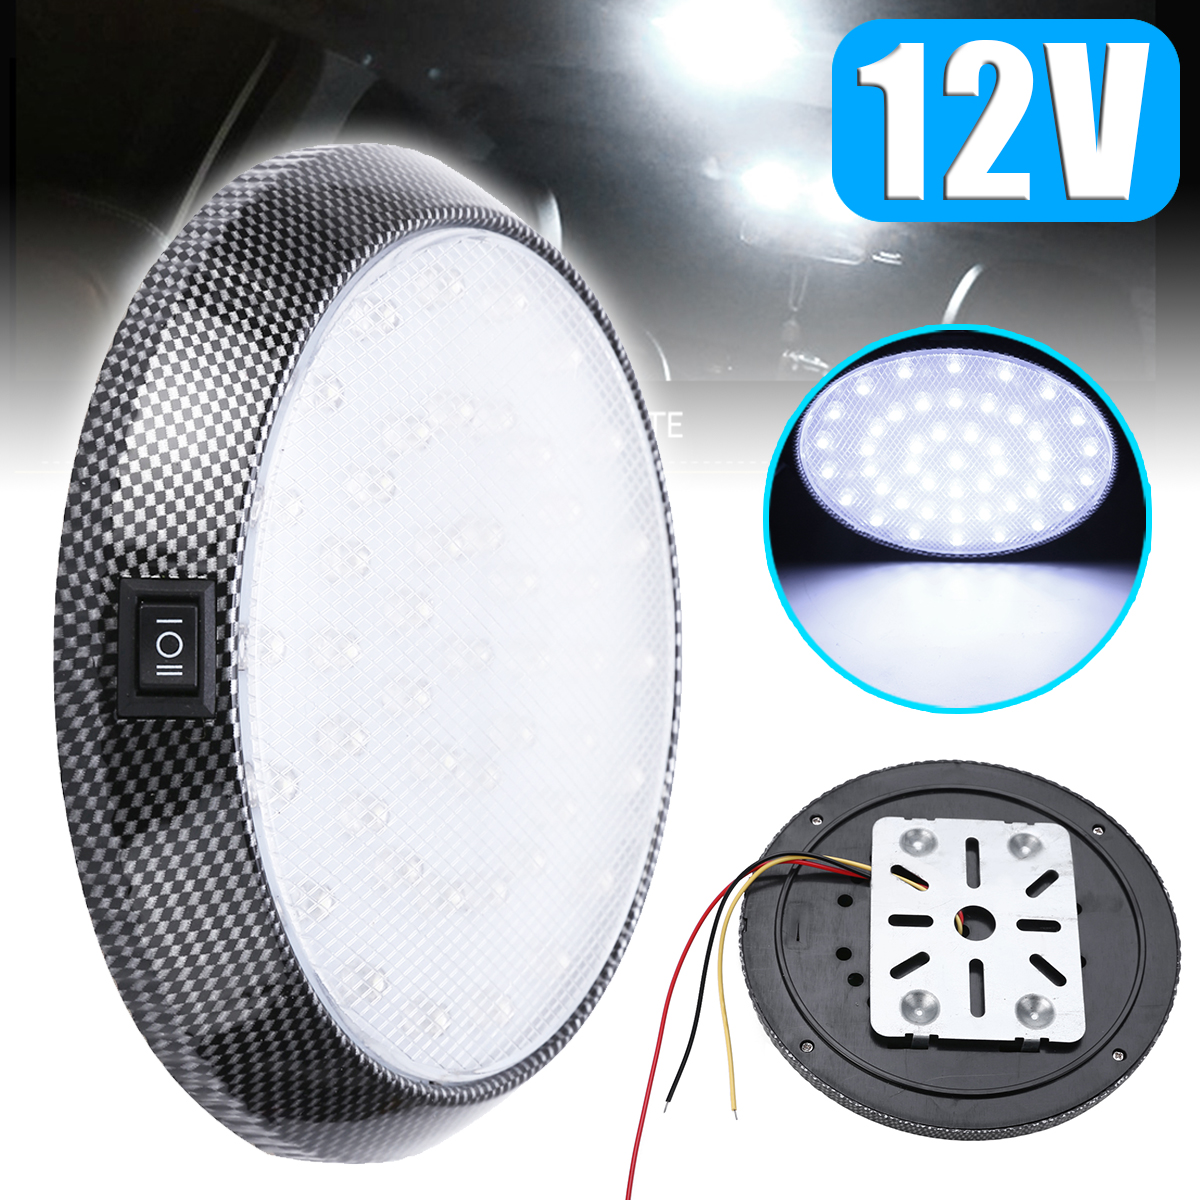 46LED 12V Automobiles Car Dome Roof Ceiling Interior Light Bulb Reading Lamp White Round Style Car Lighting Accessories